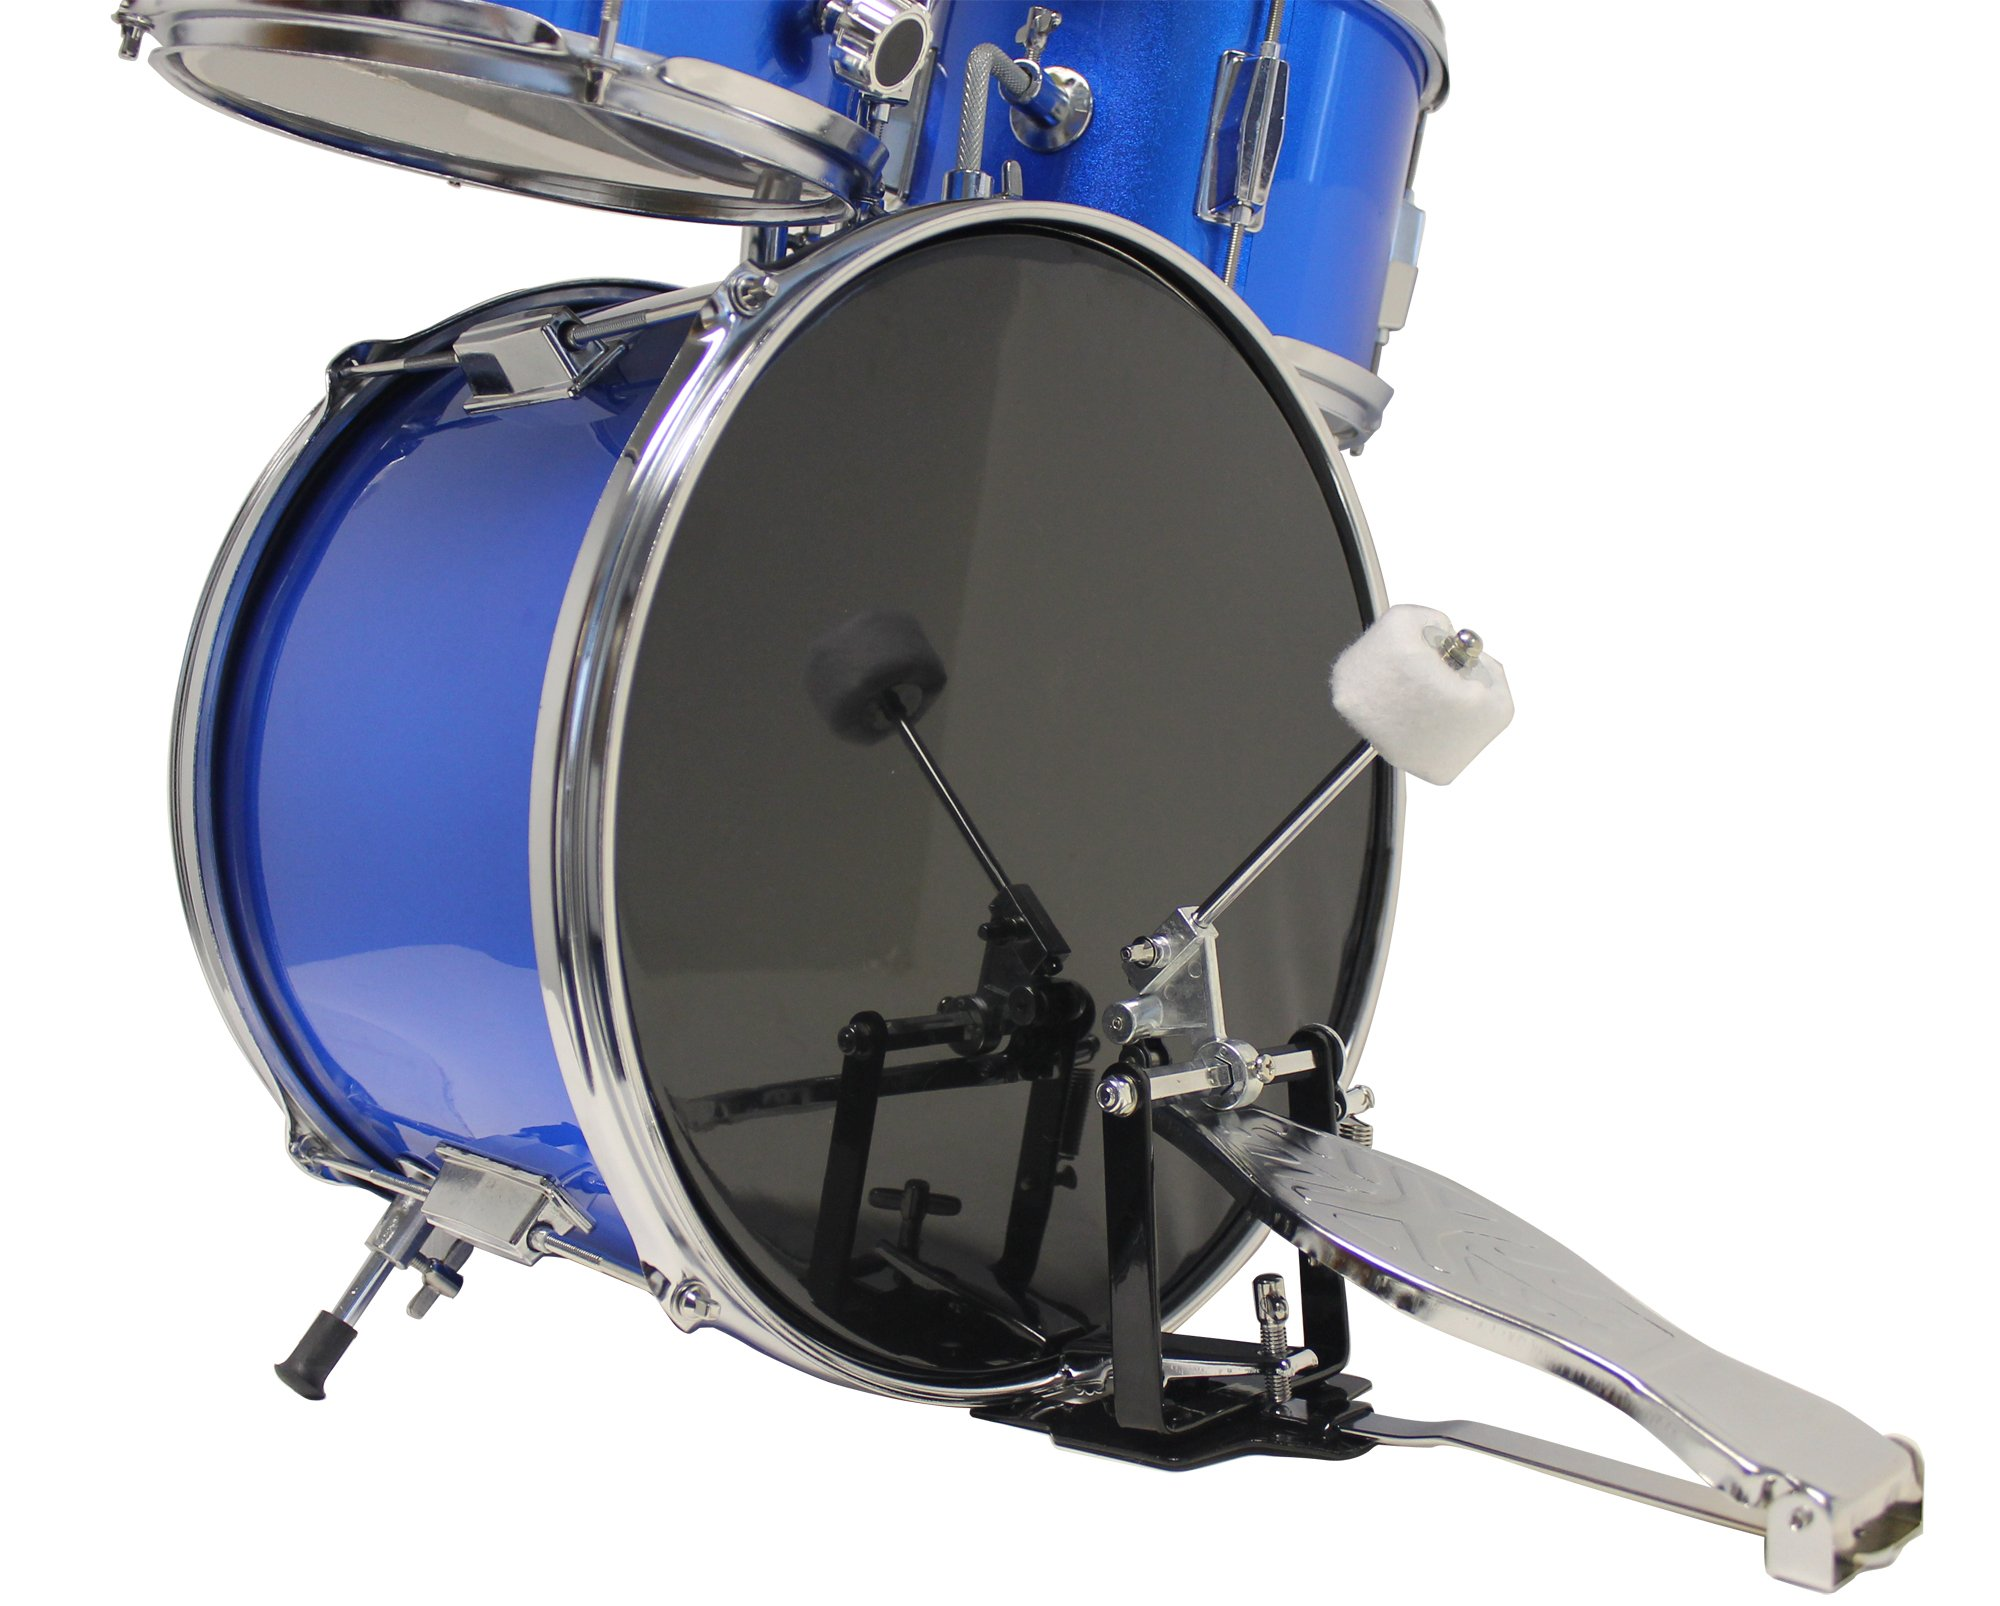 Music Alley Kids 3 Piece Beginners Drum Kit, Blue, inch (DBJK02) by Music Alley (Image #3)